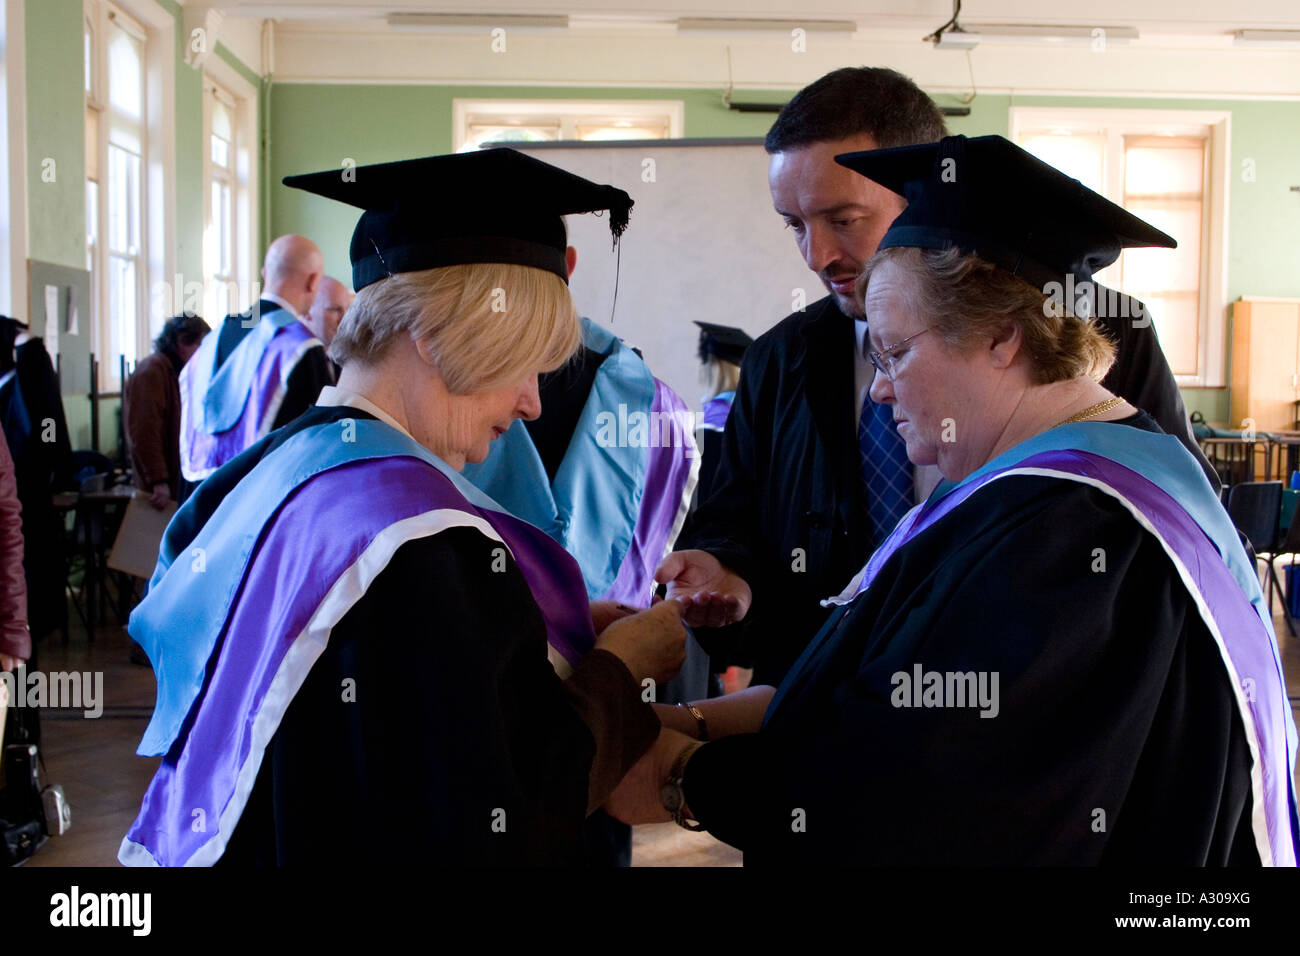 mature students graduating from college in stock photo mature students graduating from college in